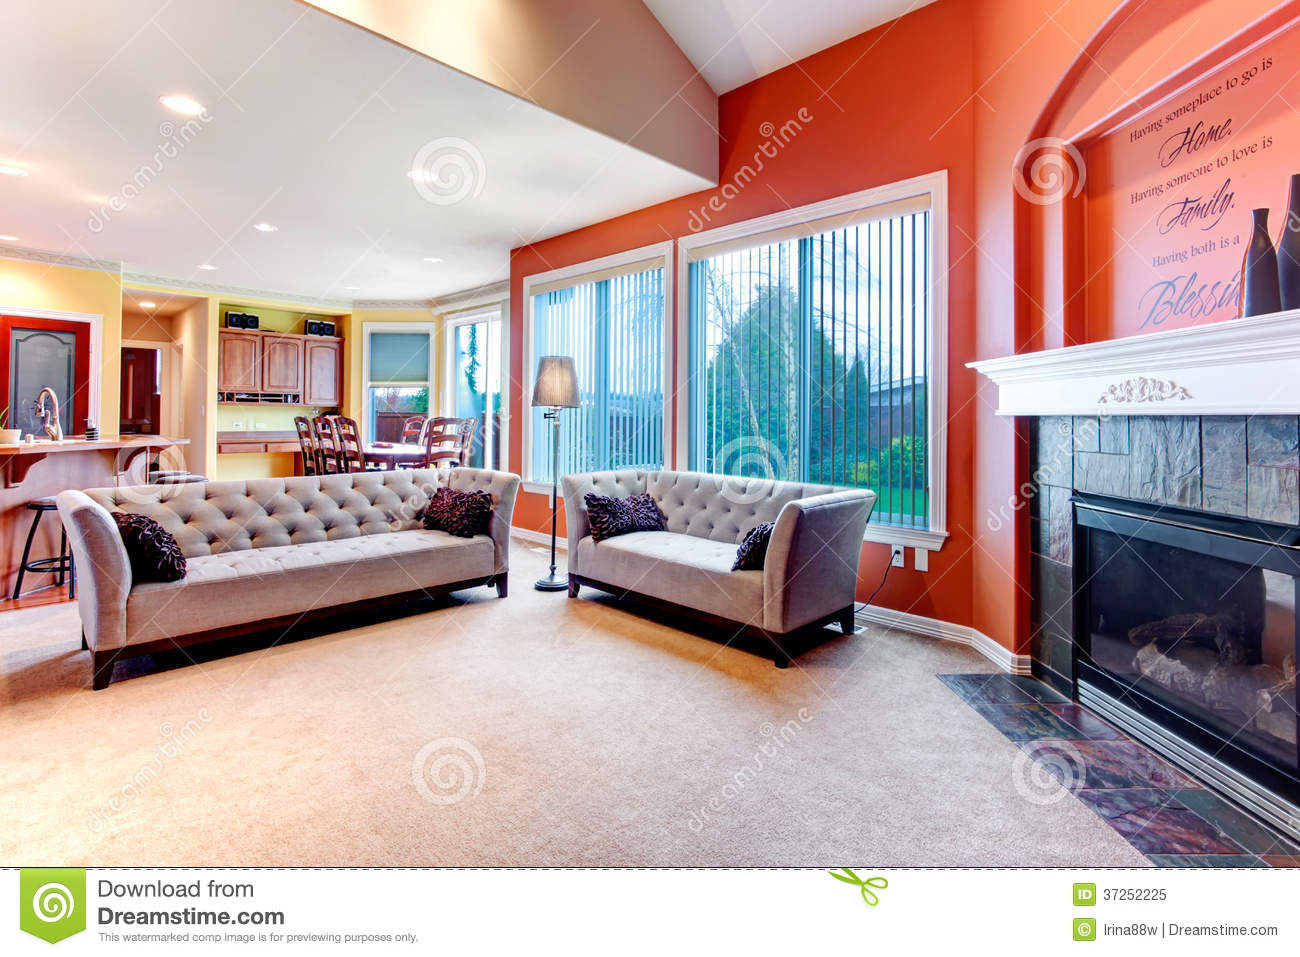 Bright Orange Color Scheme For Living Room Stock Image ...